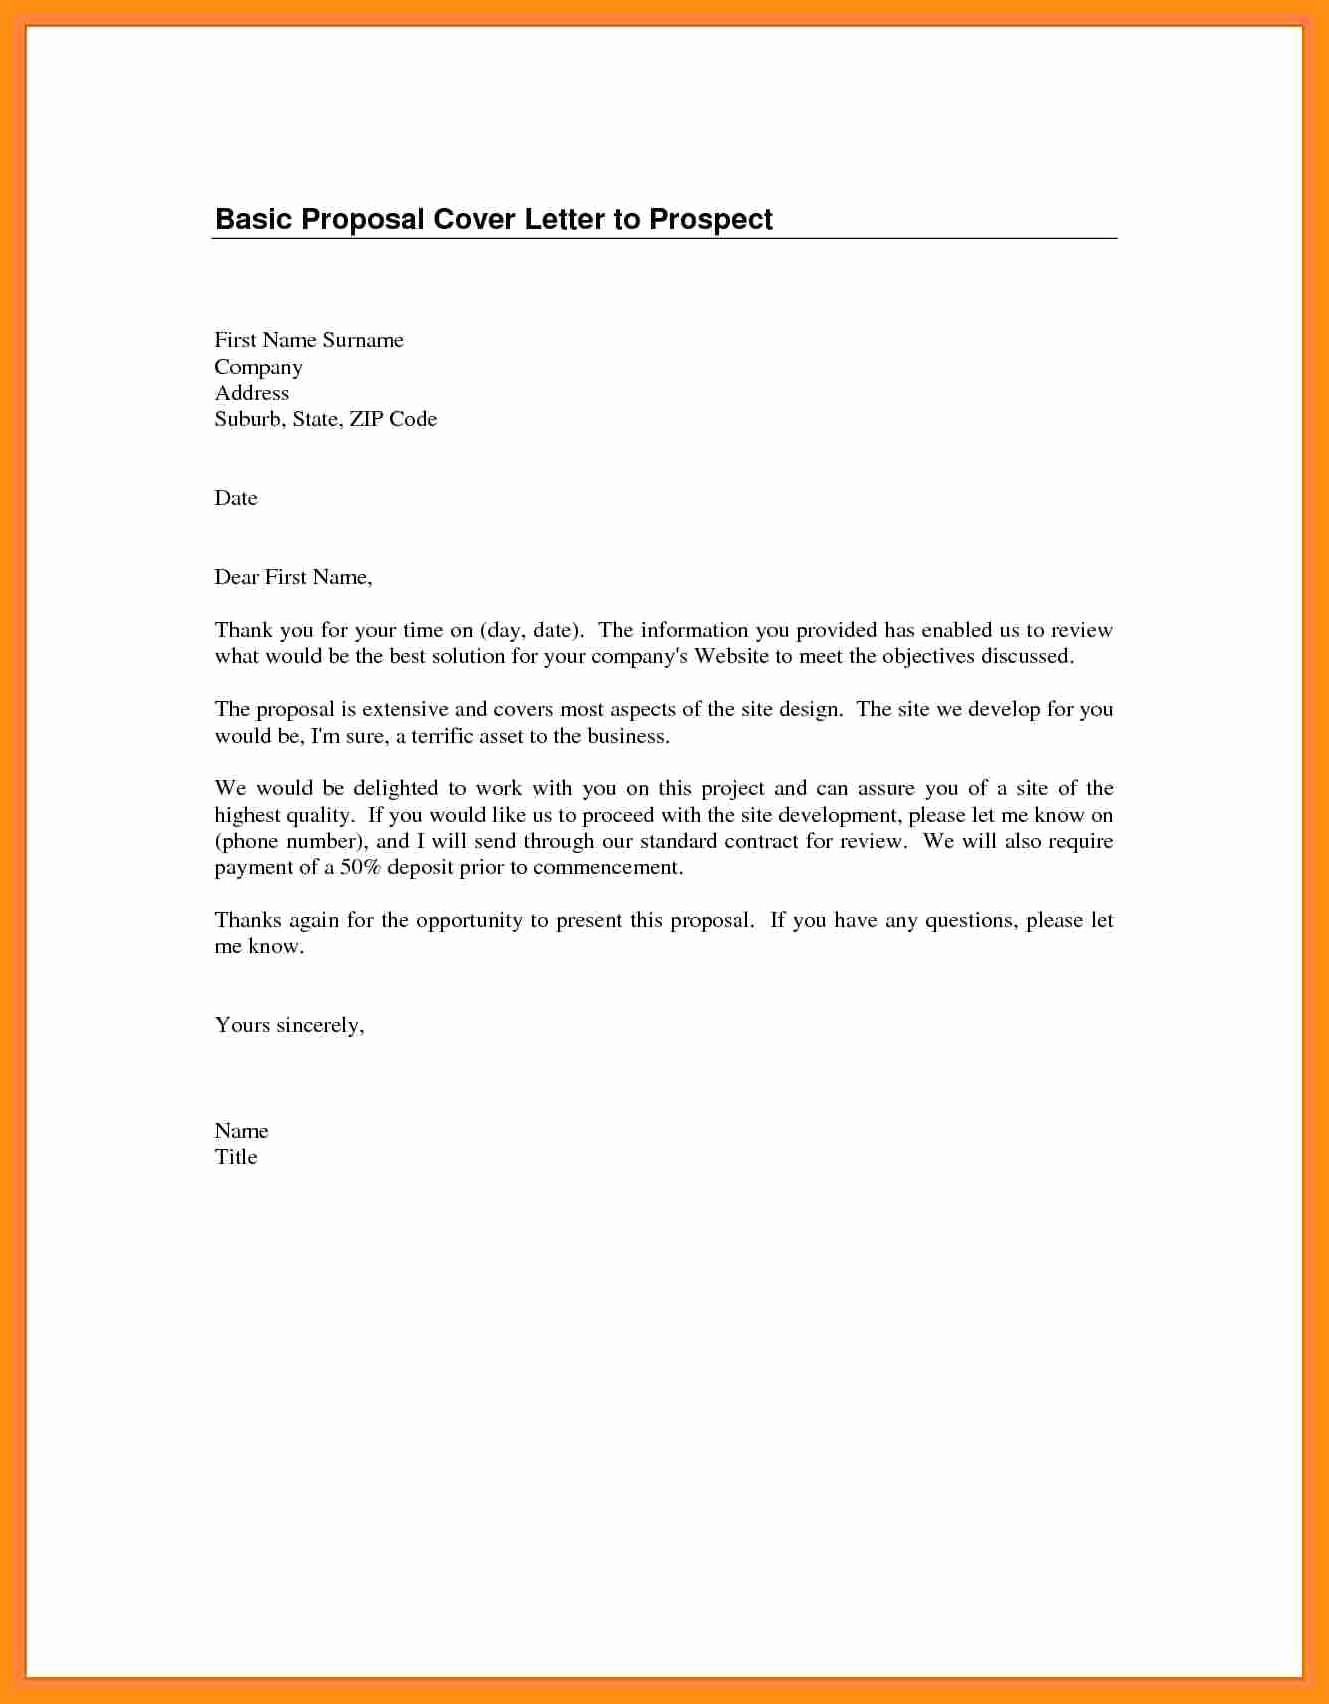 Sample Of Simple Cover Letter New Basic Cover Letter for Any Job